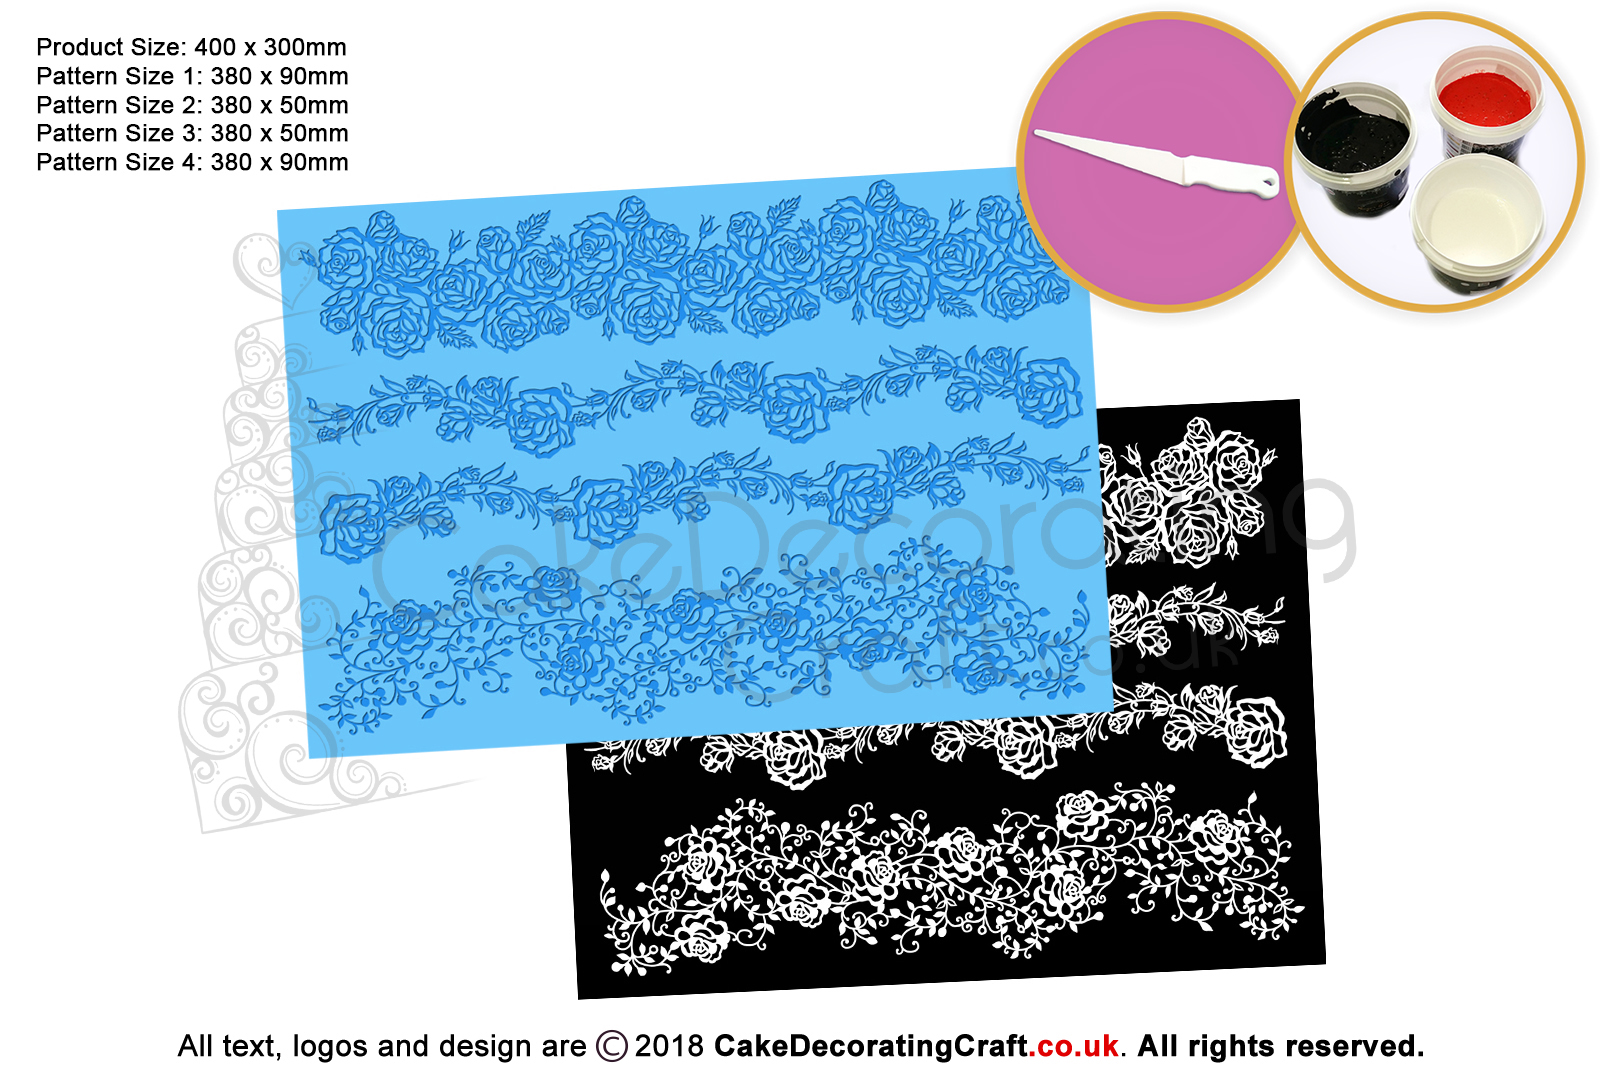 Roses Garland Cake Lace Mats Cake Decorating Starter Kit Cake